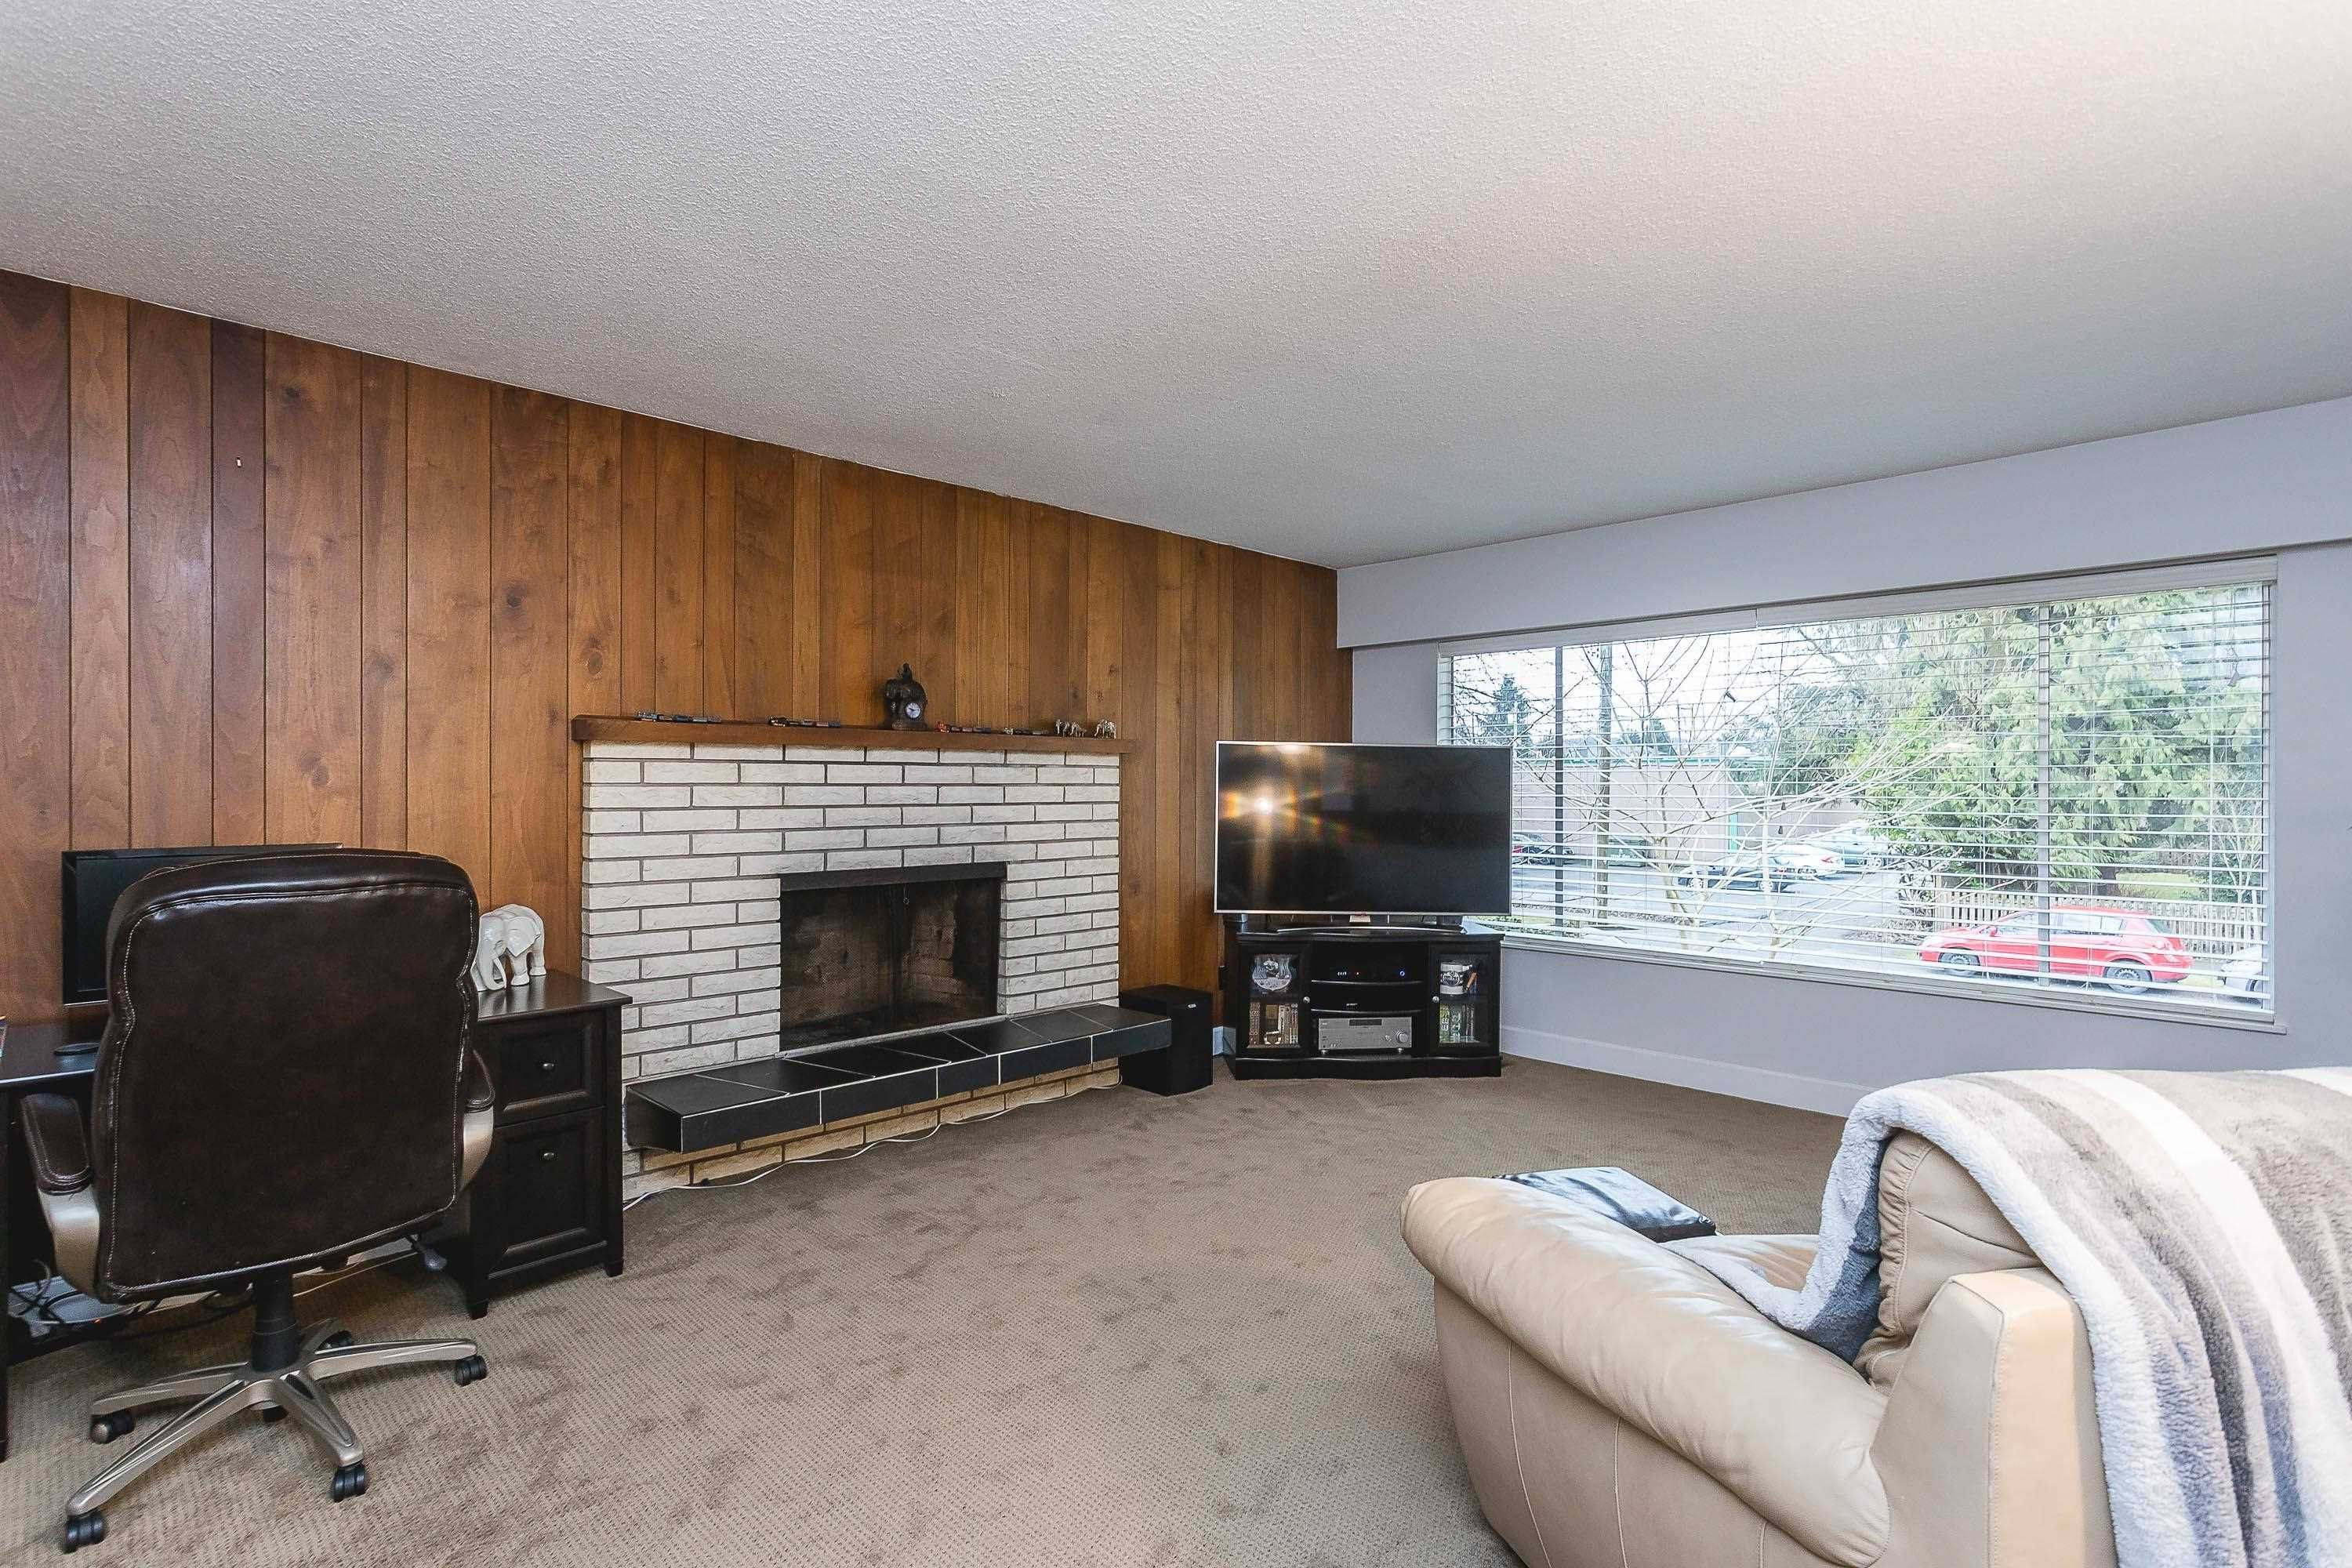 Photo 16: Photos: 3260 ULSTER Street in Port Coquitlam: Lincoln Park PQ House for sale : MLS®# R2613283